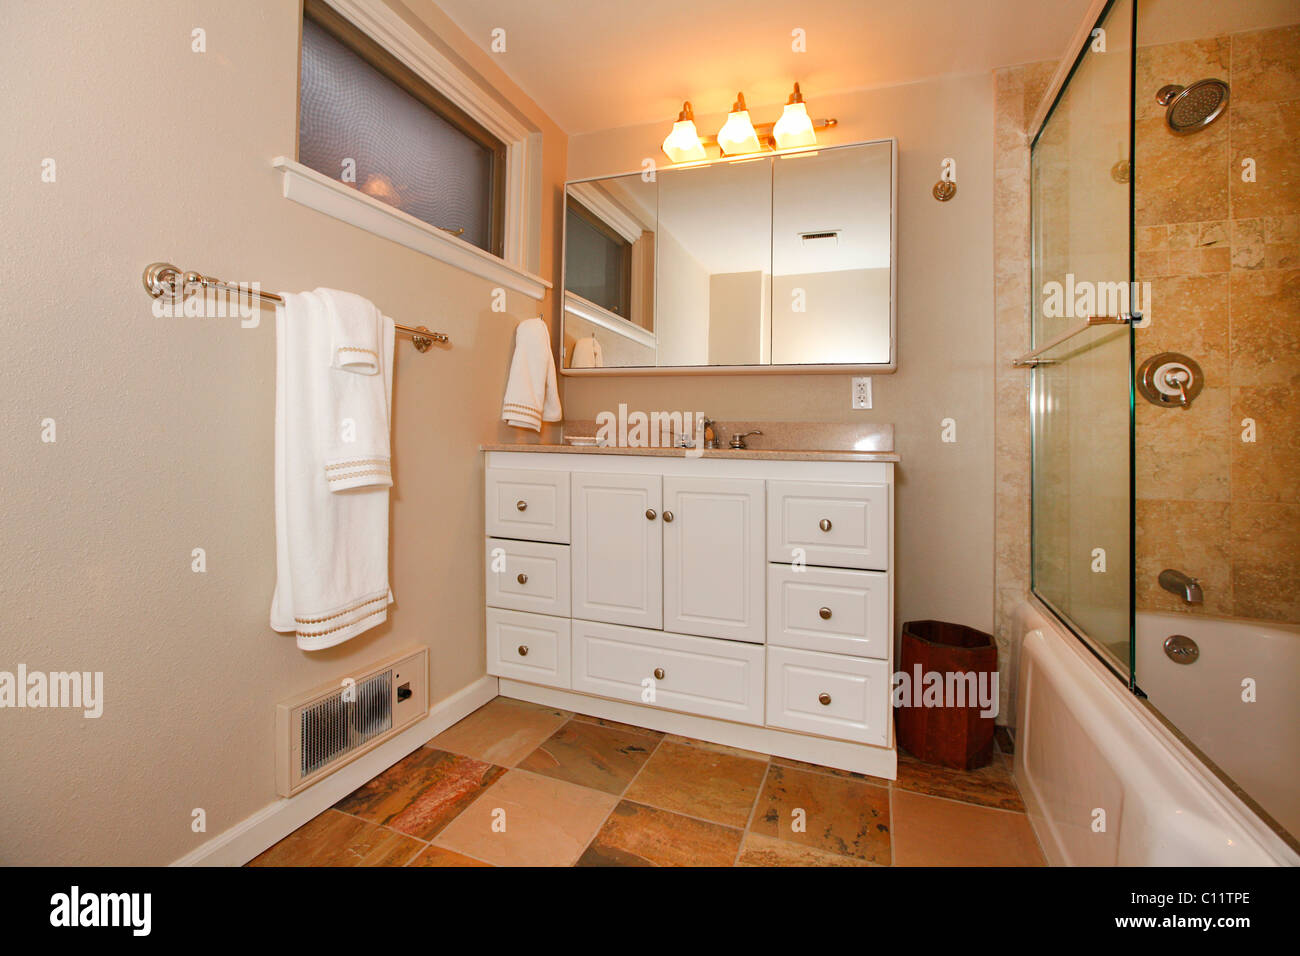 Classic beige bathroom with white and wood cabinets, tiles and beige walls. Tacoma, WA Stock Photo